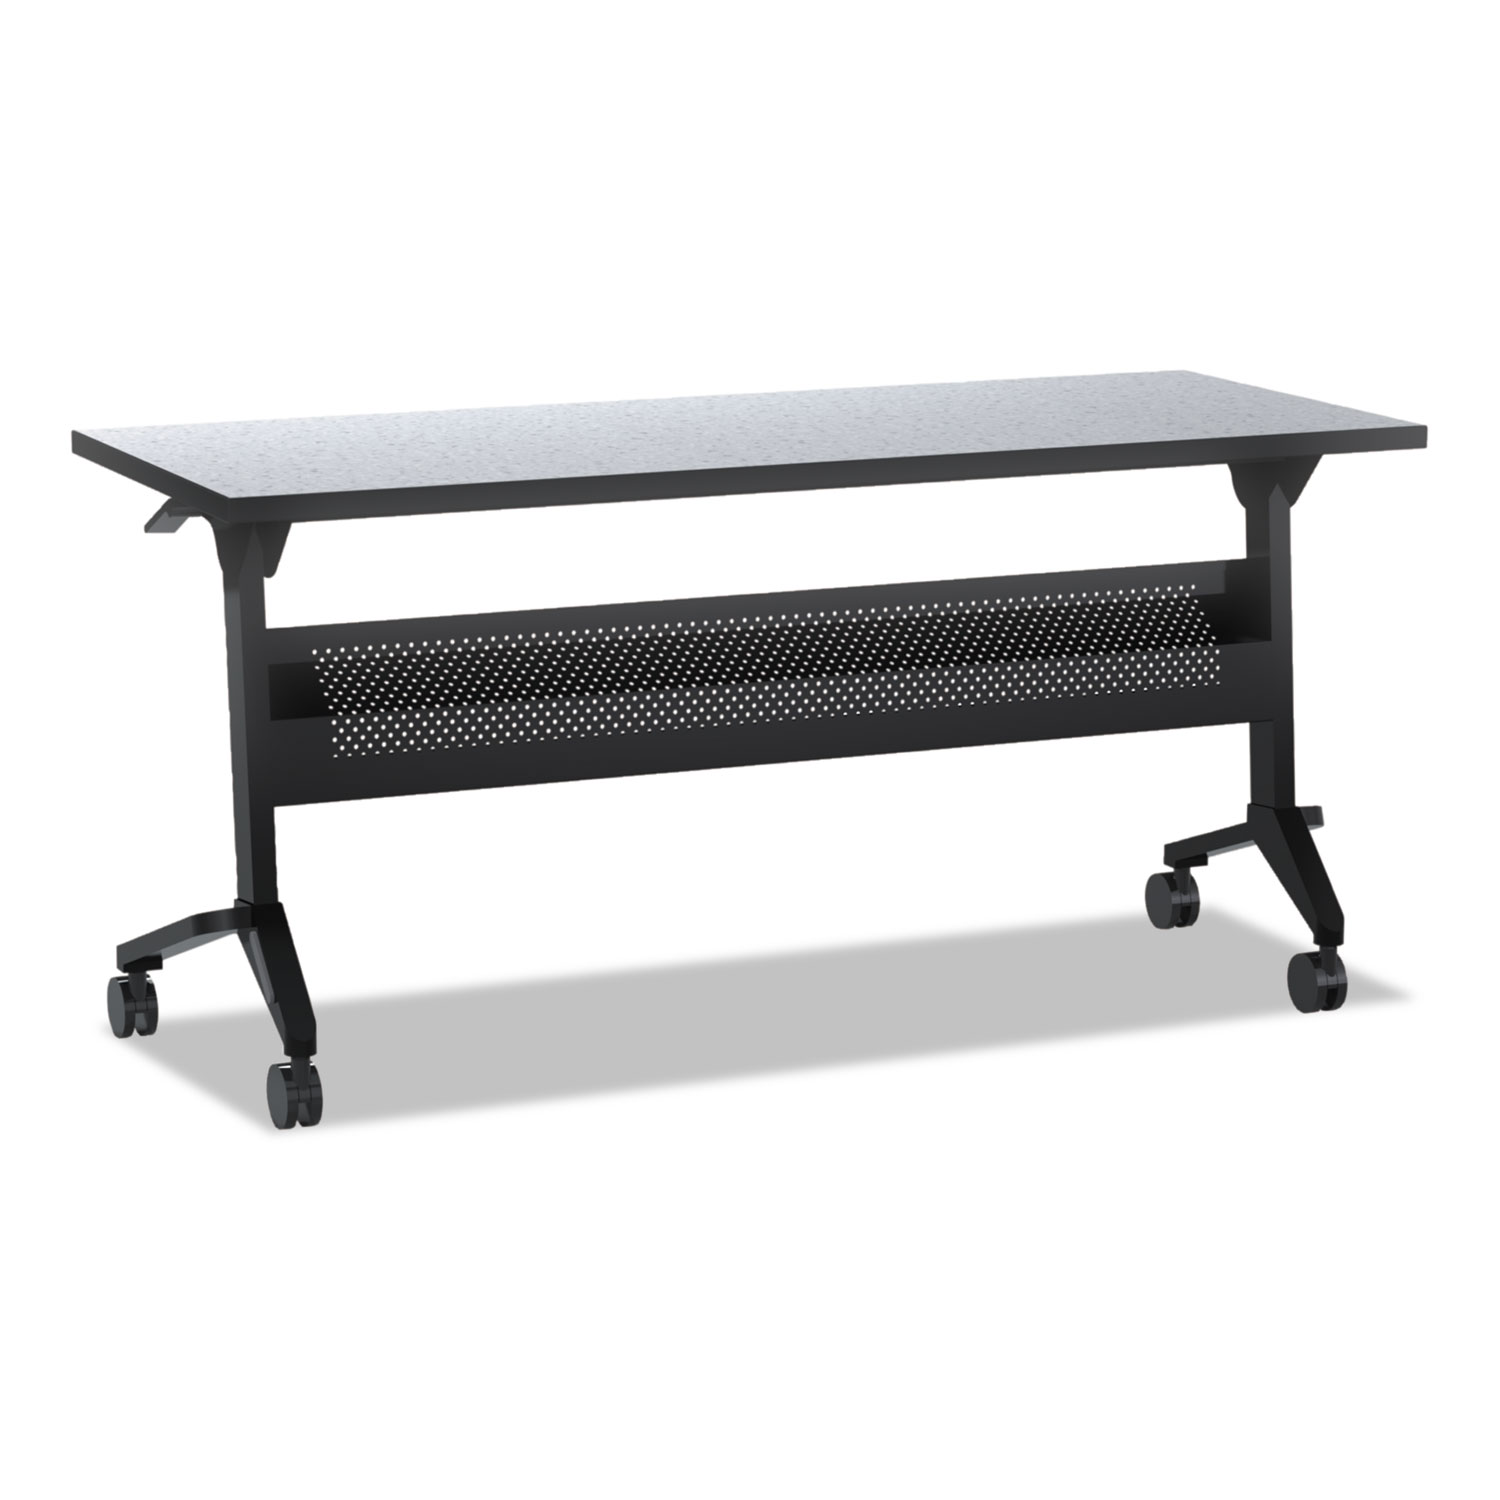 Flip-n-Go Table Top, 48w x 24d, Folkstone